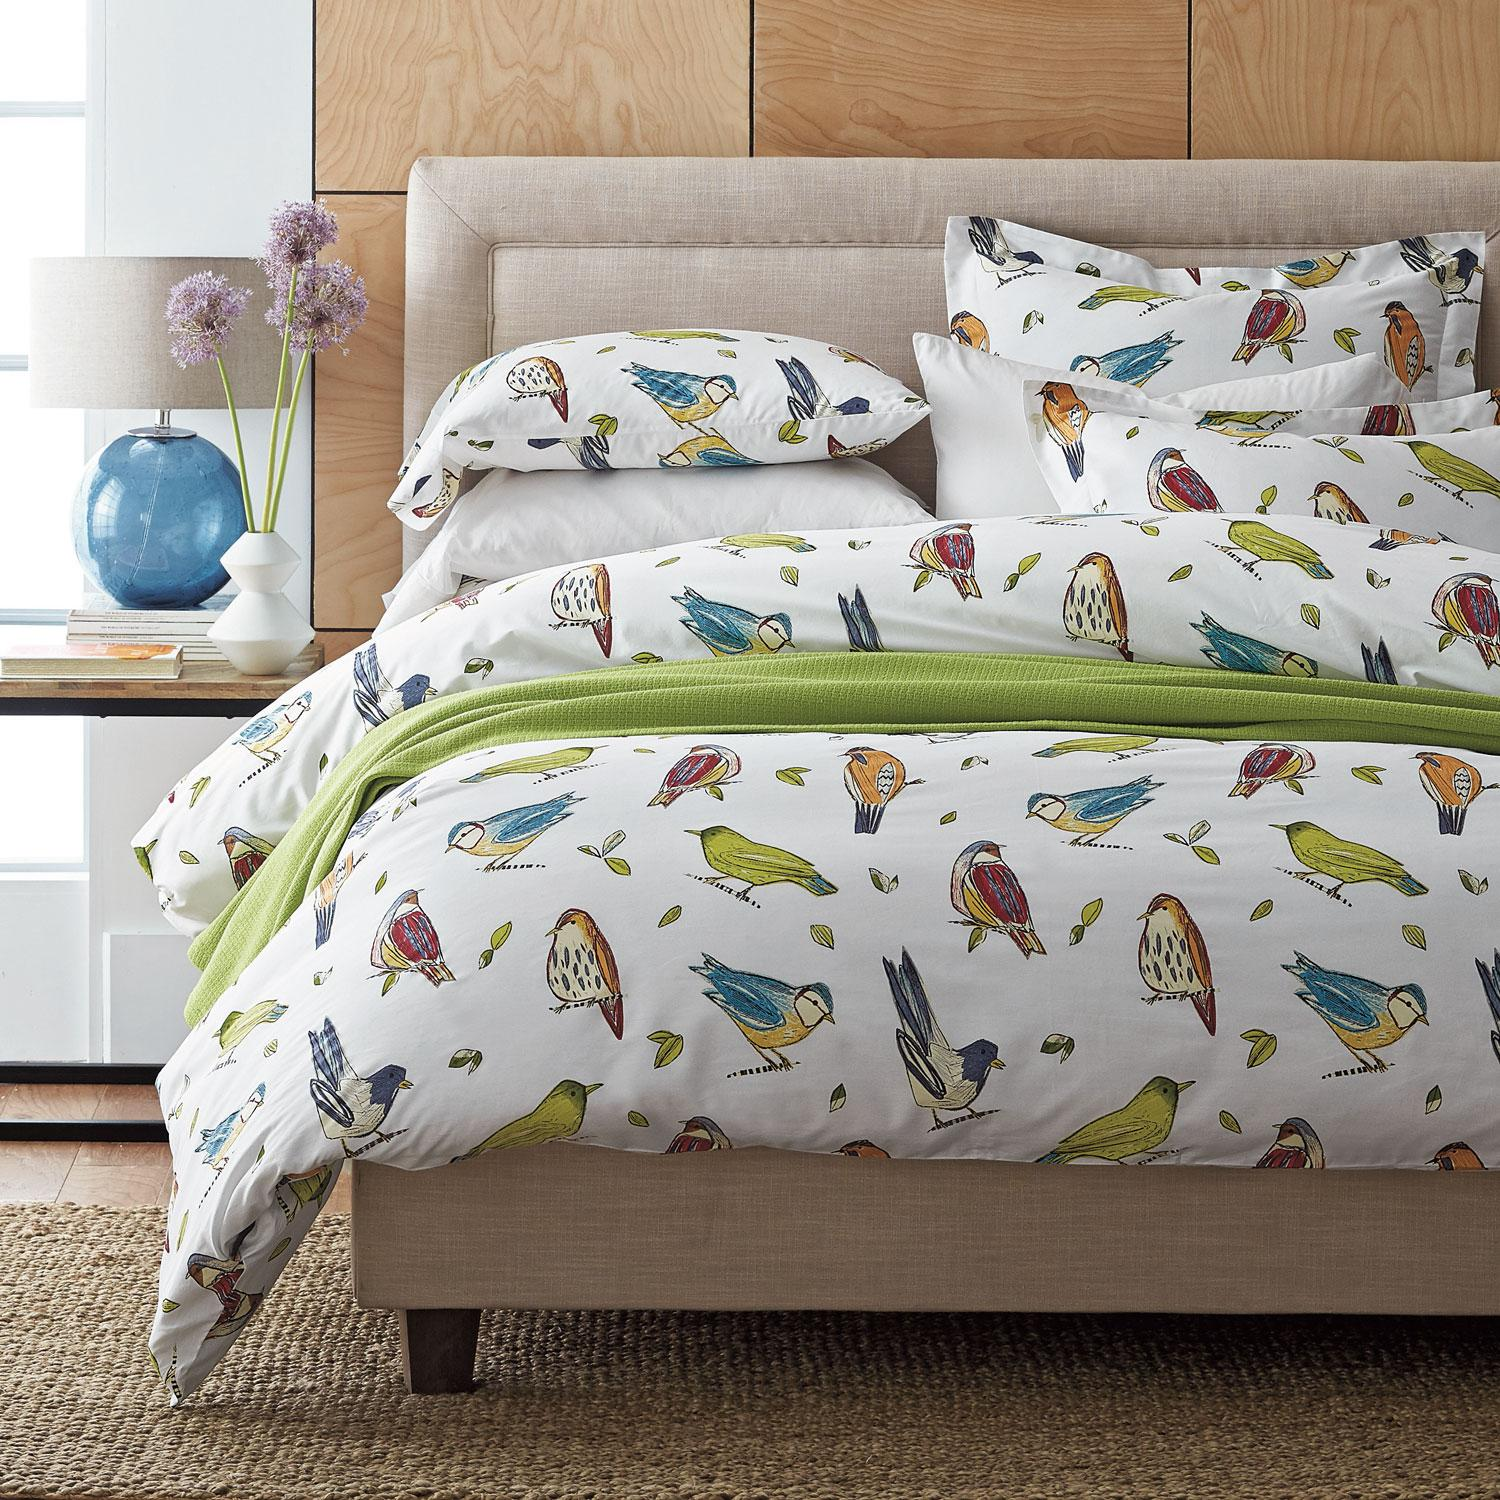 Spring Birds Percale Sheets  Bedding Set  The Company Store